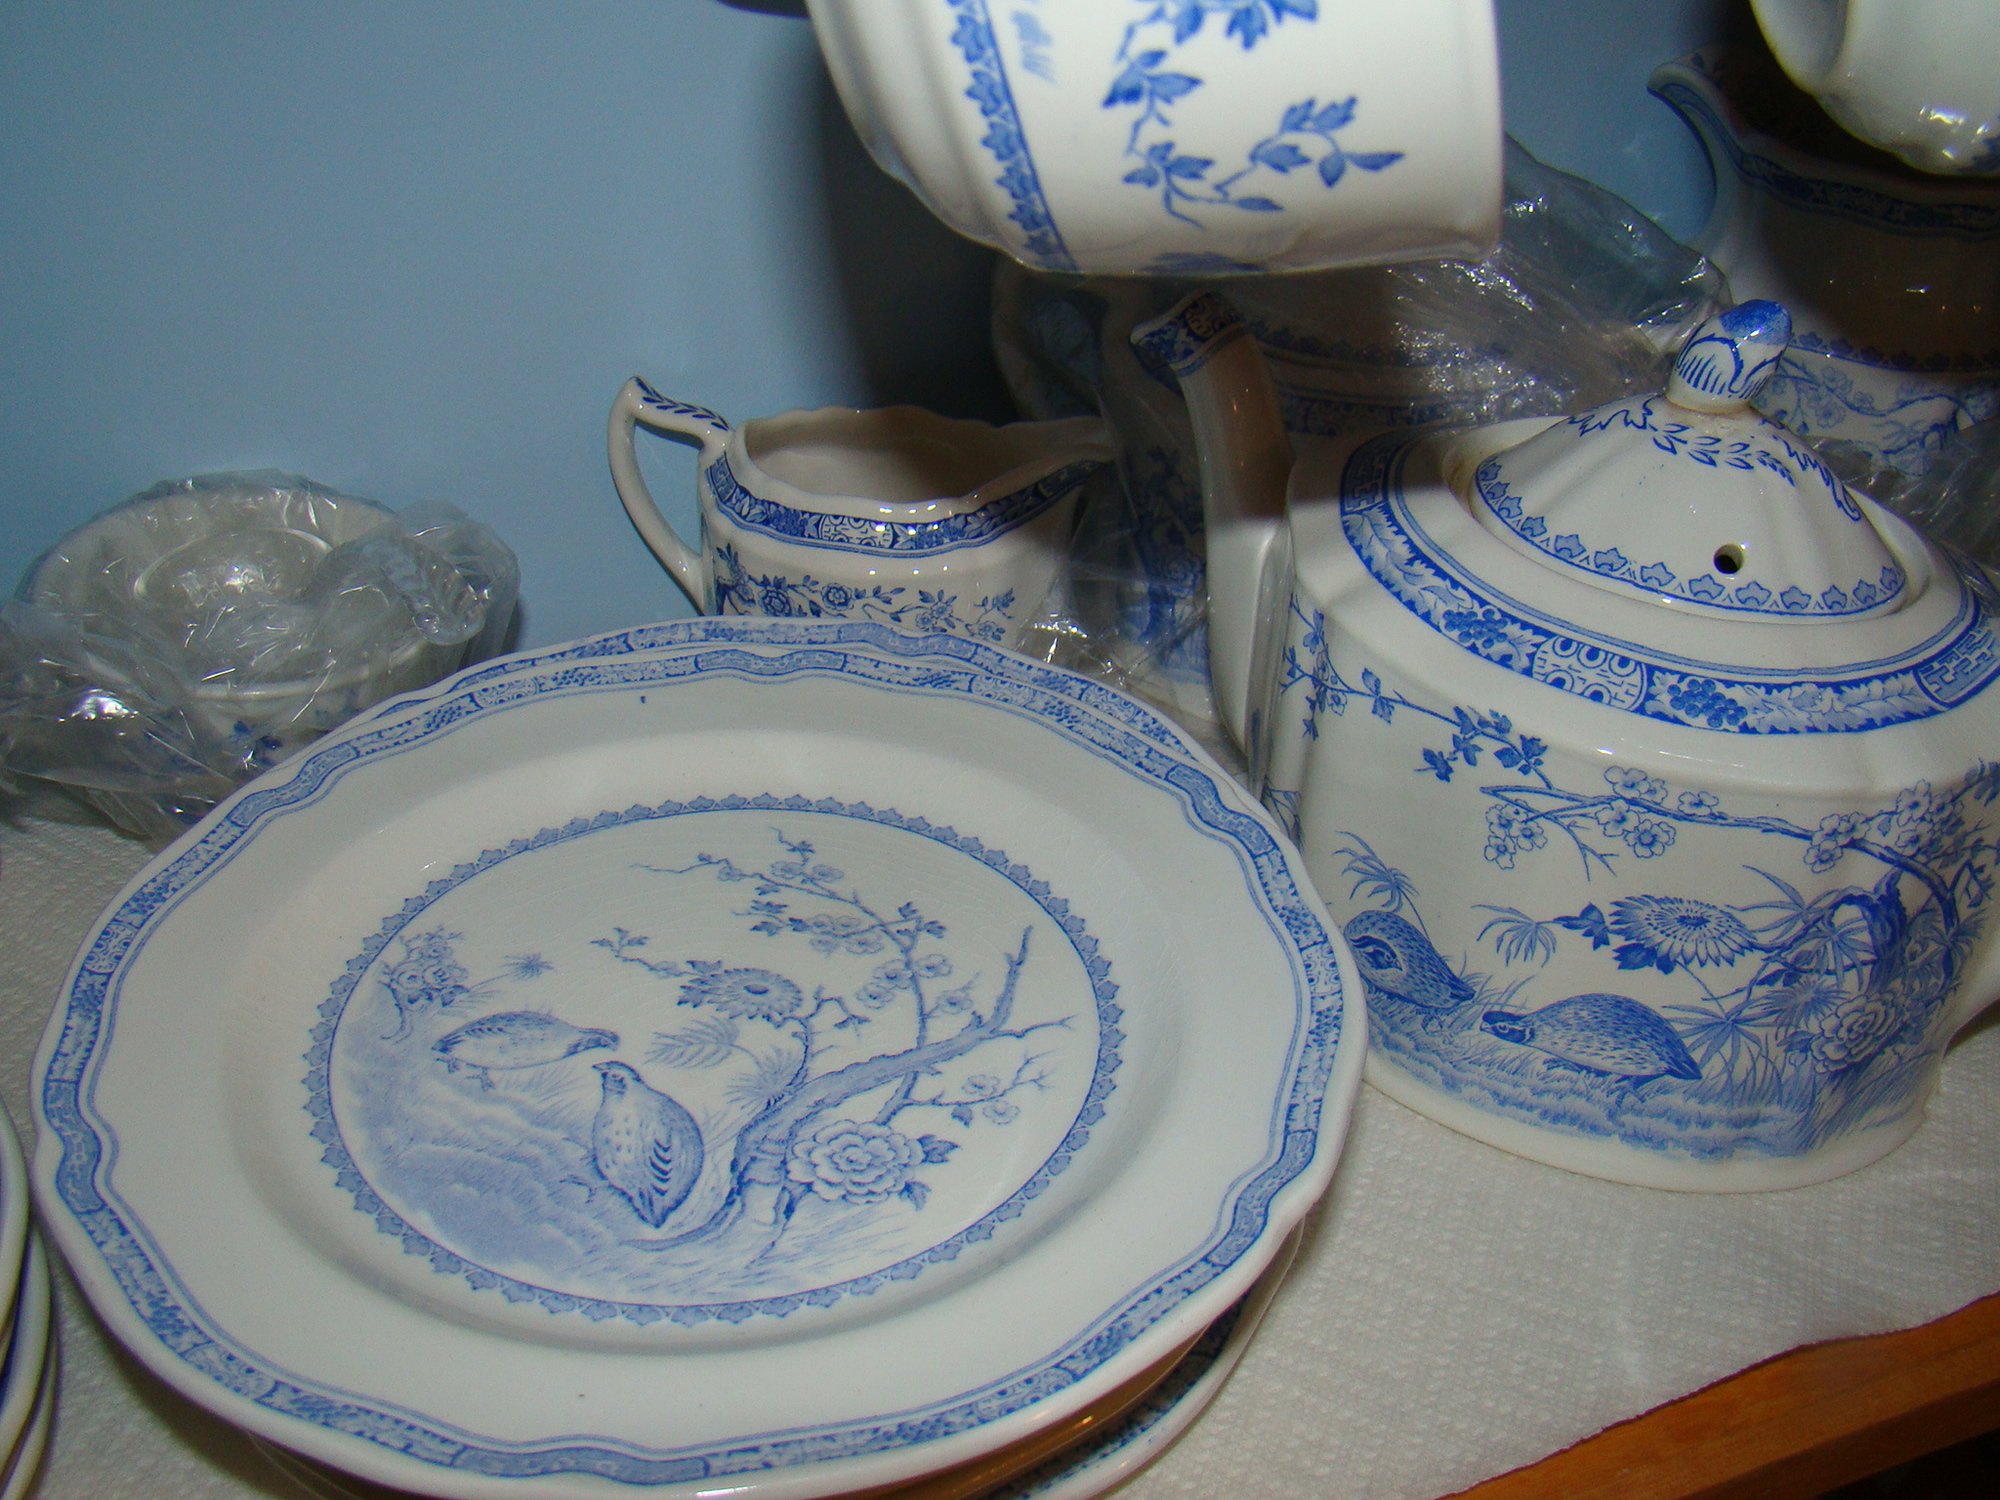 Expert advice and answers on Antique Chinese Porcelain. Antique Chinese Porcelain help and info for collector's of Antique Chinese and Japanese Porcelain. Chinsese Porcelain collector's Discussion Board. Chinese Porcelain collector's page; Chinese Porcelain, Chinese porcelain marks, Chinese Ming dynasty Porcelain, Chinse pottery and porcelain, Chinese Imari export porcelain, Ming dynasty.